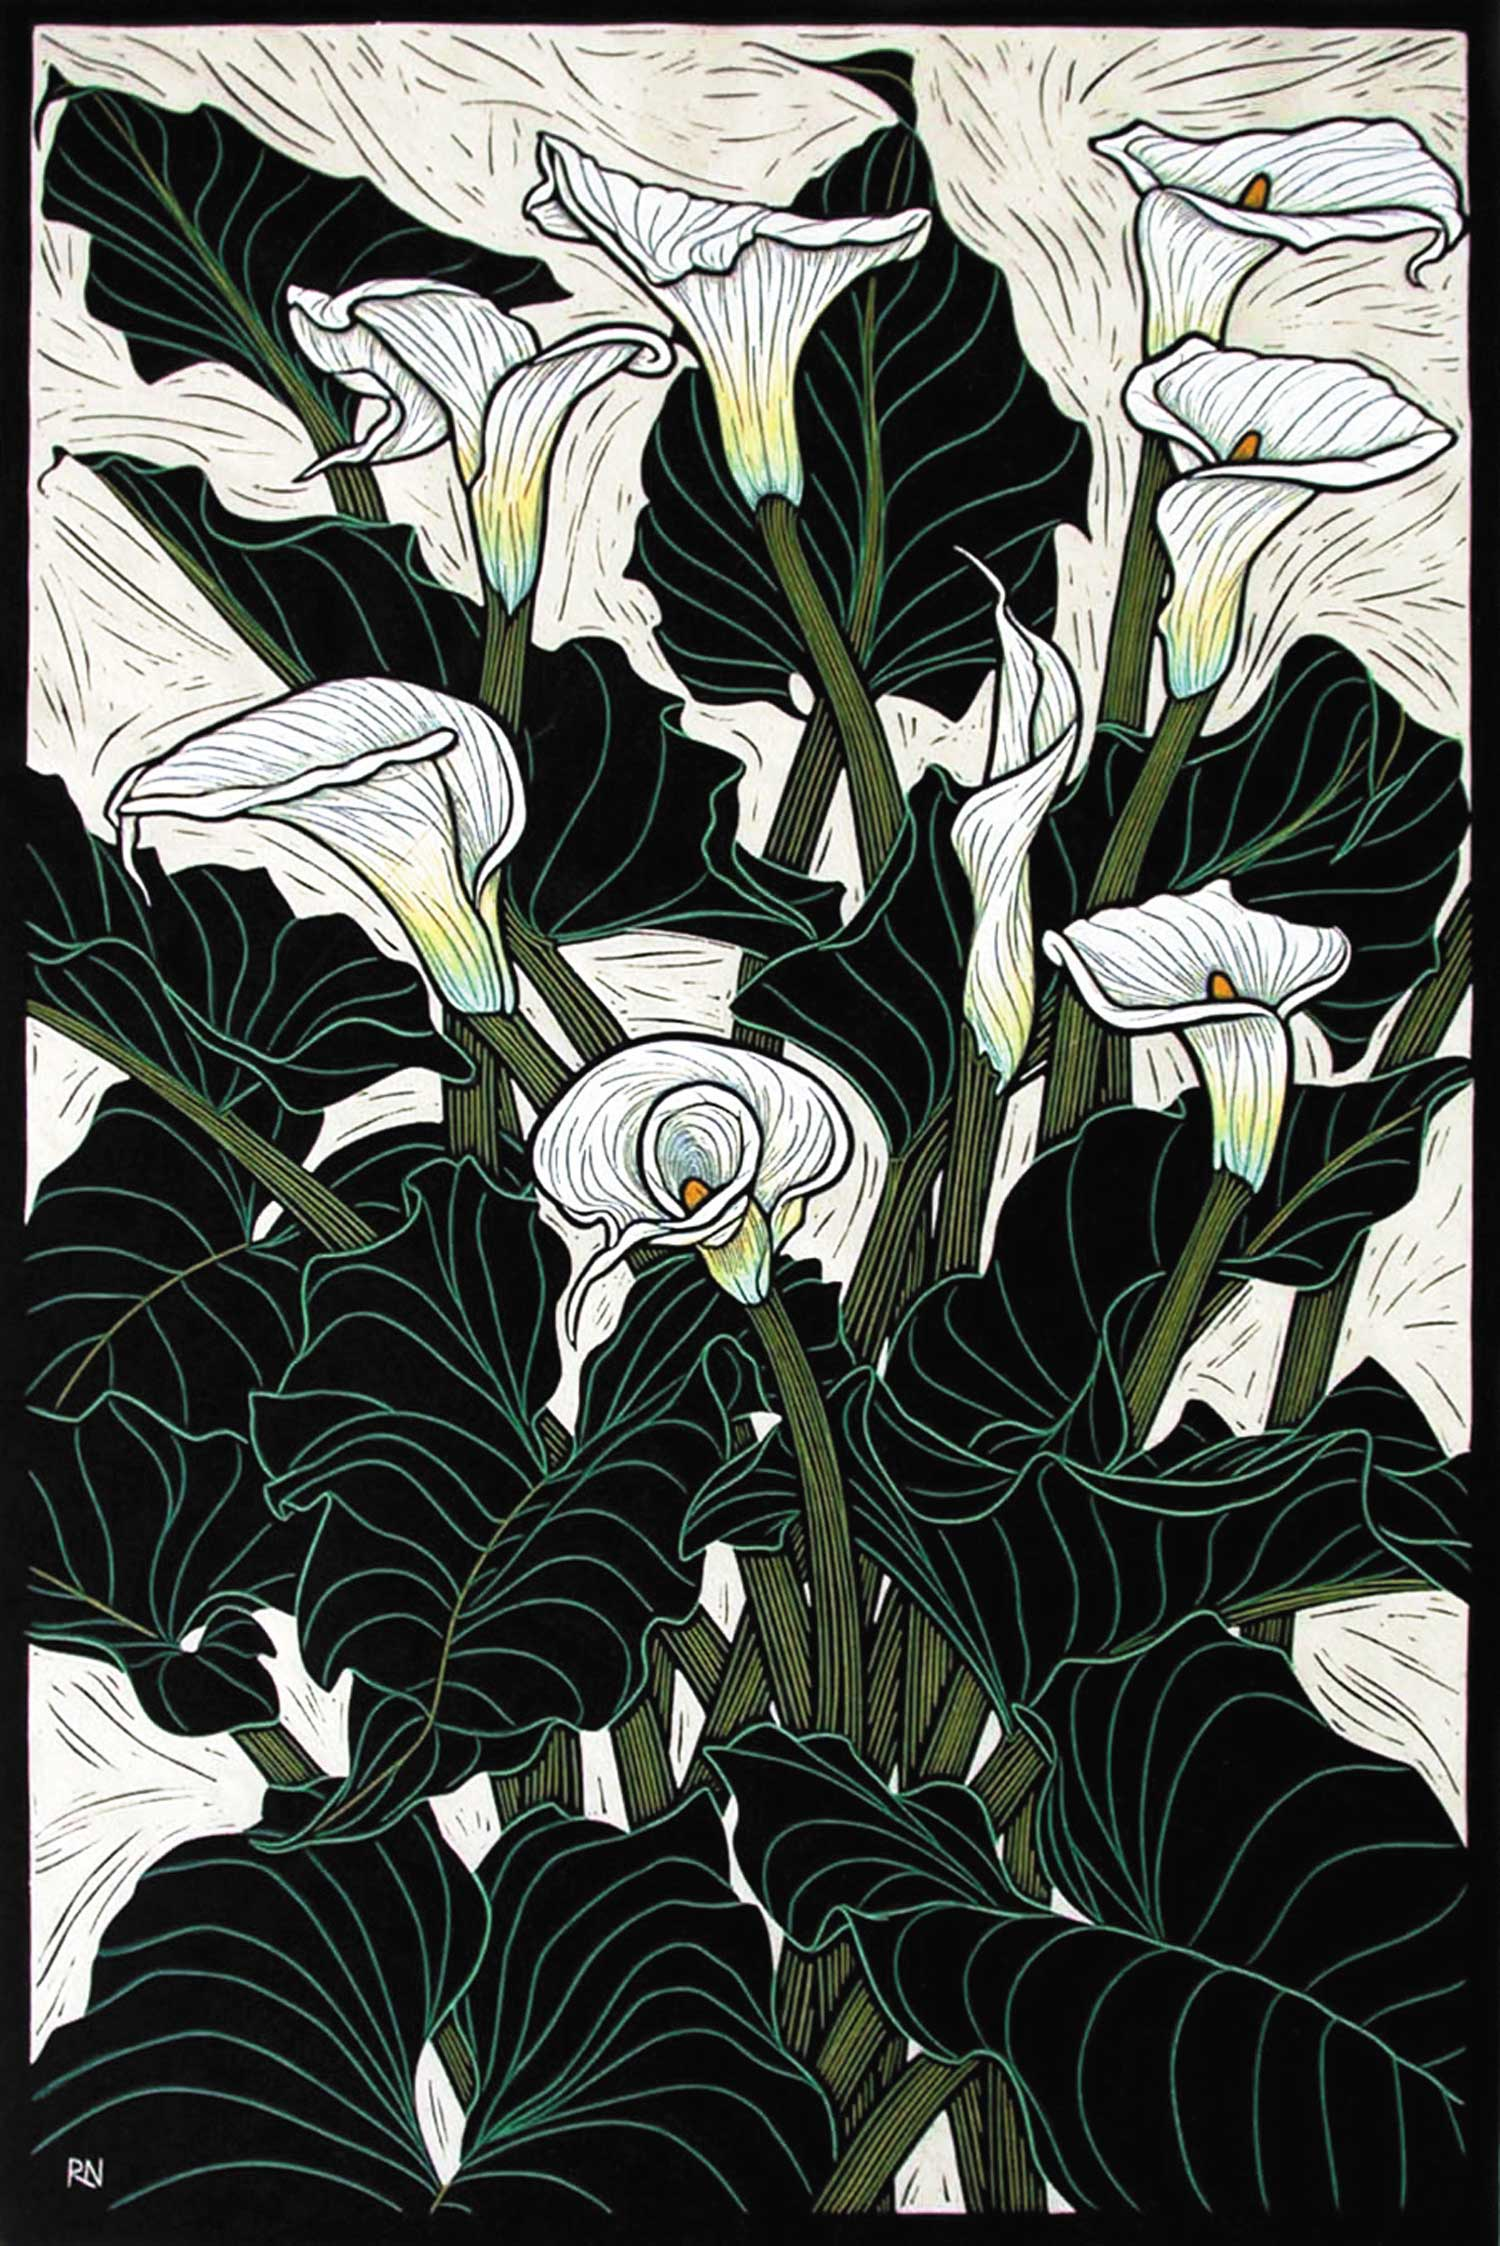 ARUM LILY  74.5 X 50 CM, EDITION OF 50  HAND-COLOURED LINOCUT ON HANDMADE JAPANESE PAPER  $1,550